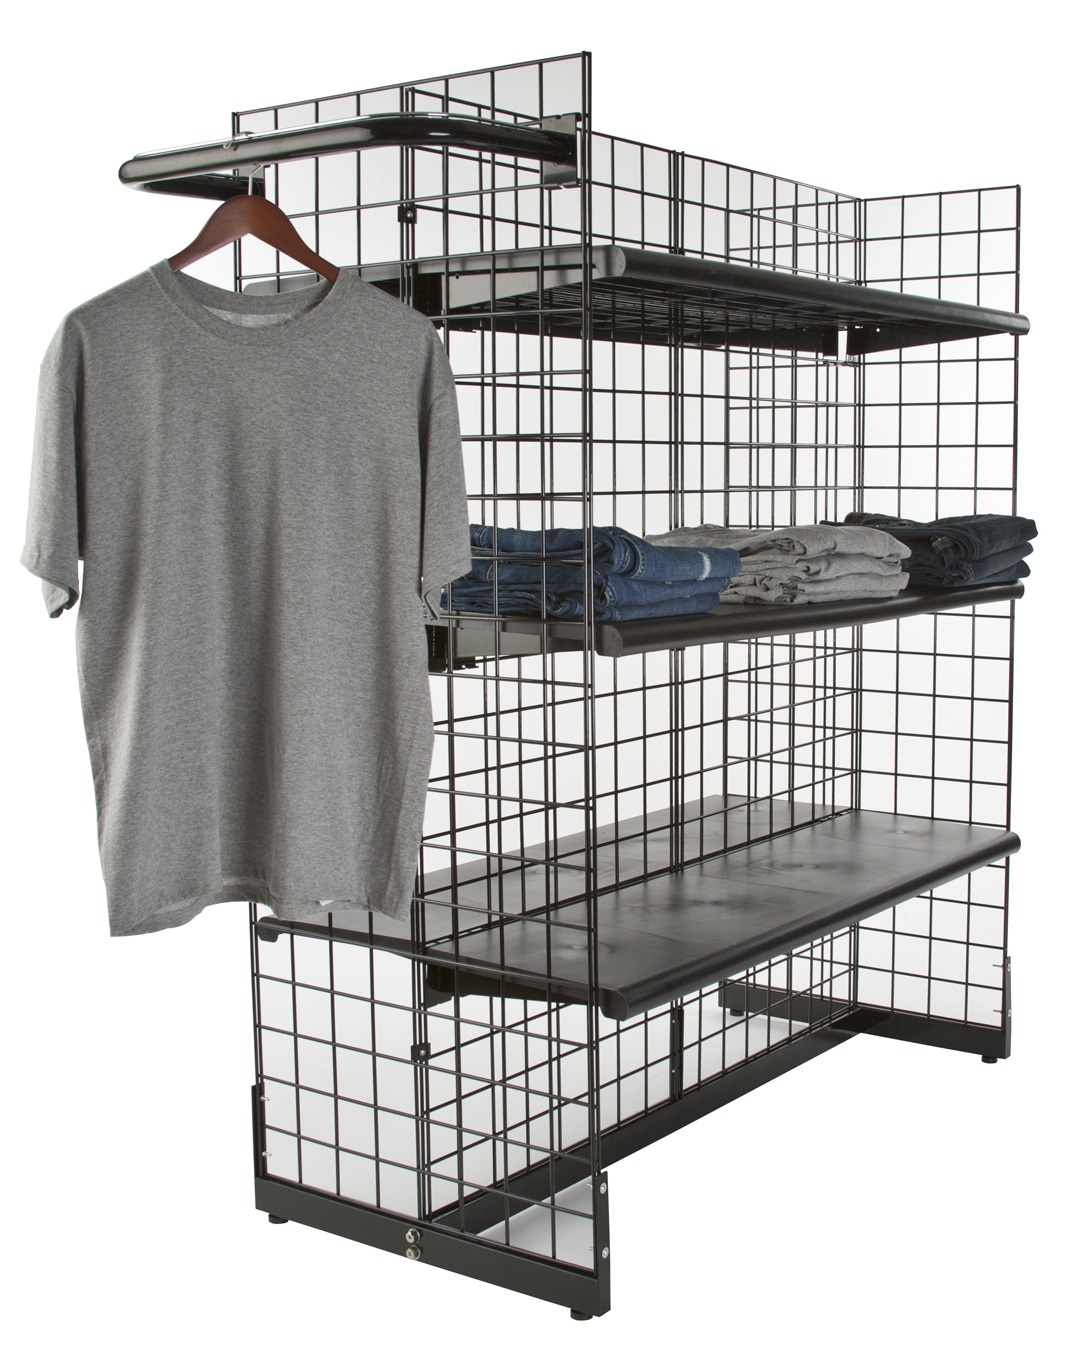 Gridwall Gondola Display (Accessories Sold Separately)